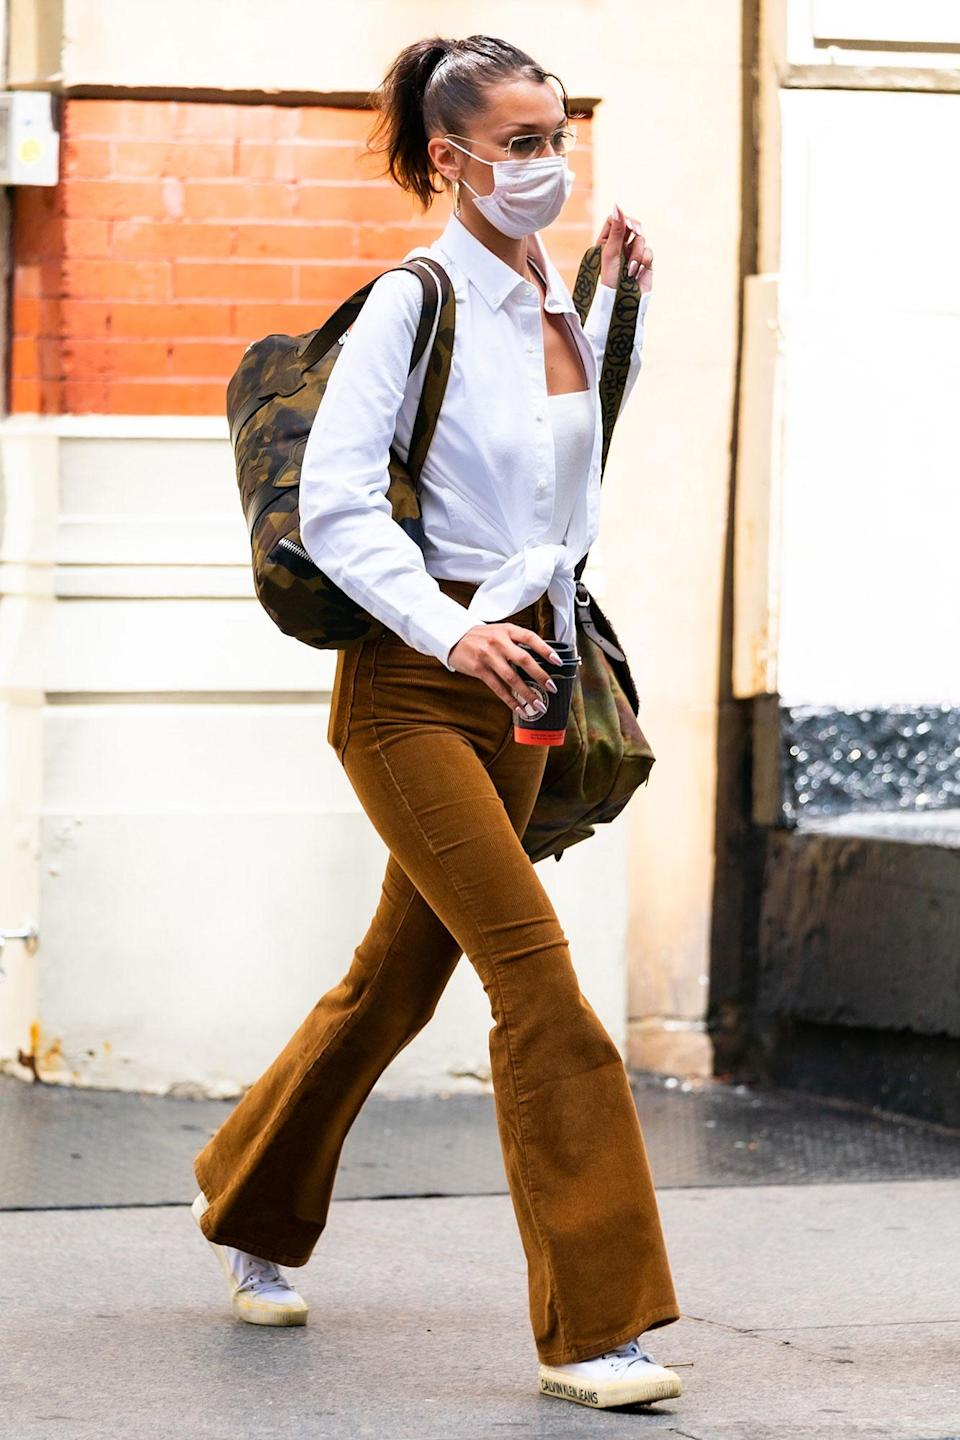 <p>Bella Hadid was seen out in New York City with her packed bags and face mask.</p>